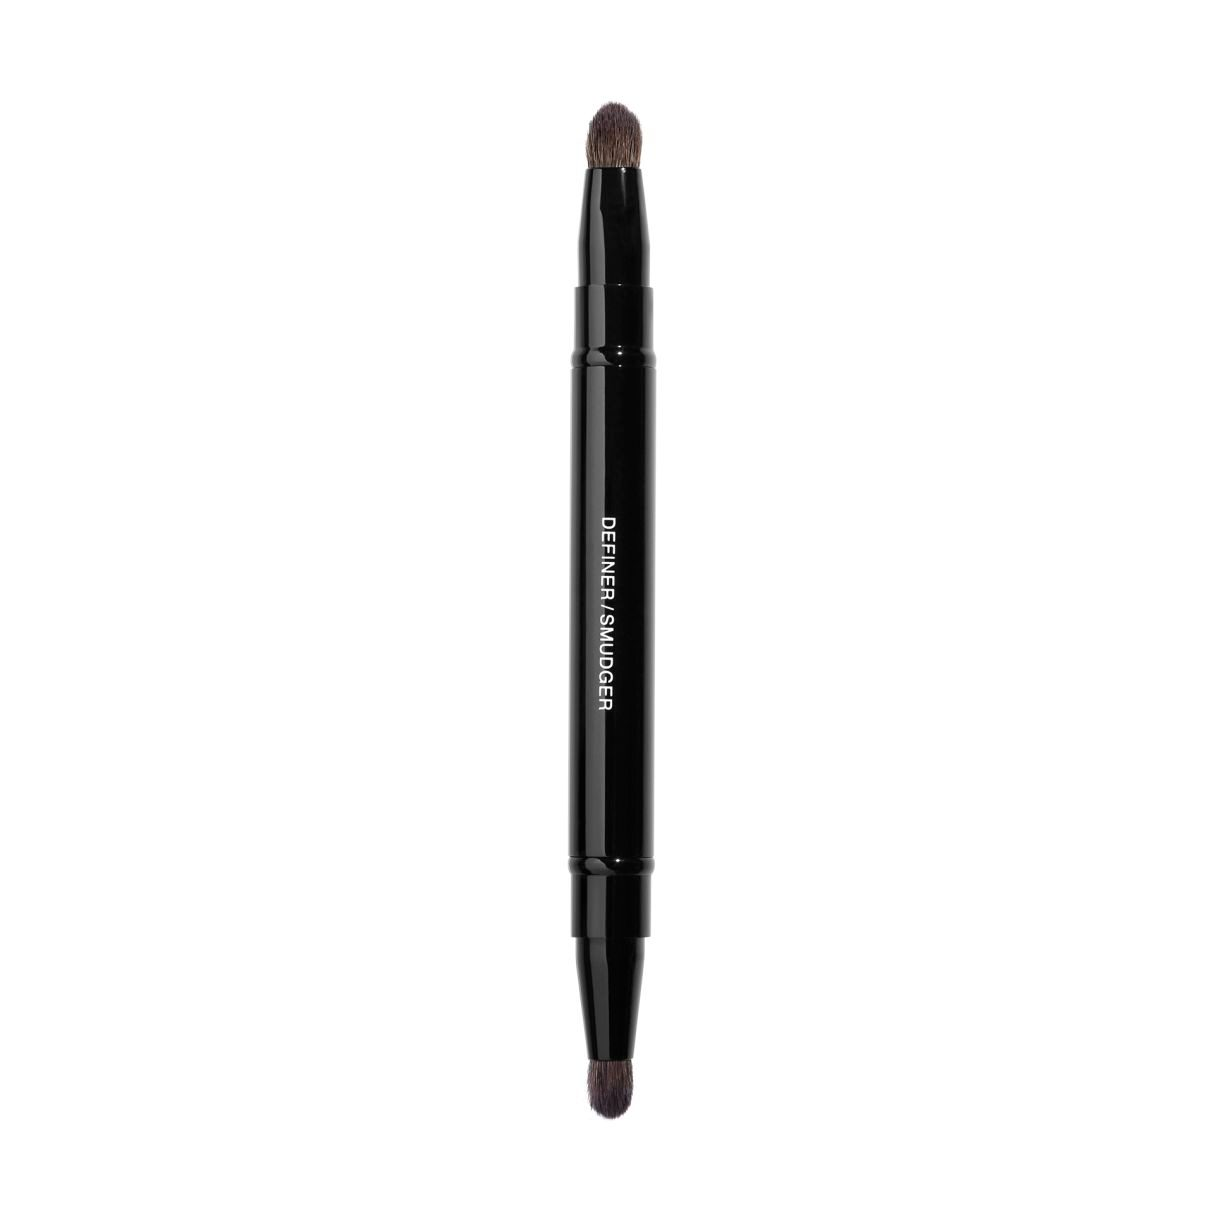 PINCEAU DUO CONTOUR YEUX RÉTRACTABLE RETRACTABLE DUAL-TIP EYE-CONTOURING BRUSH